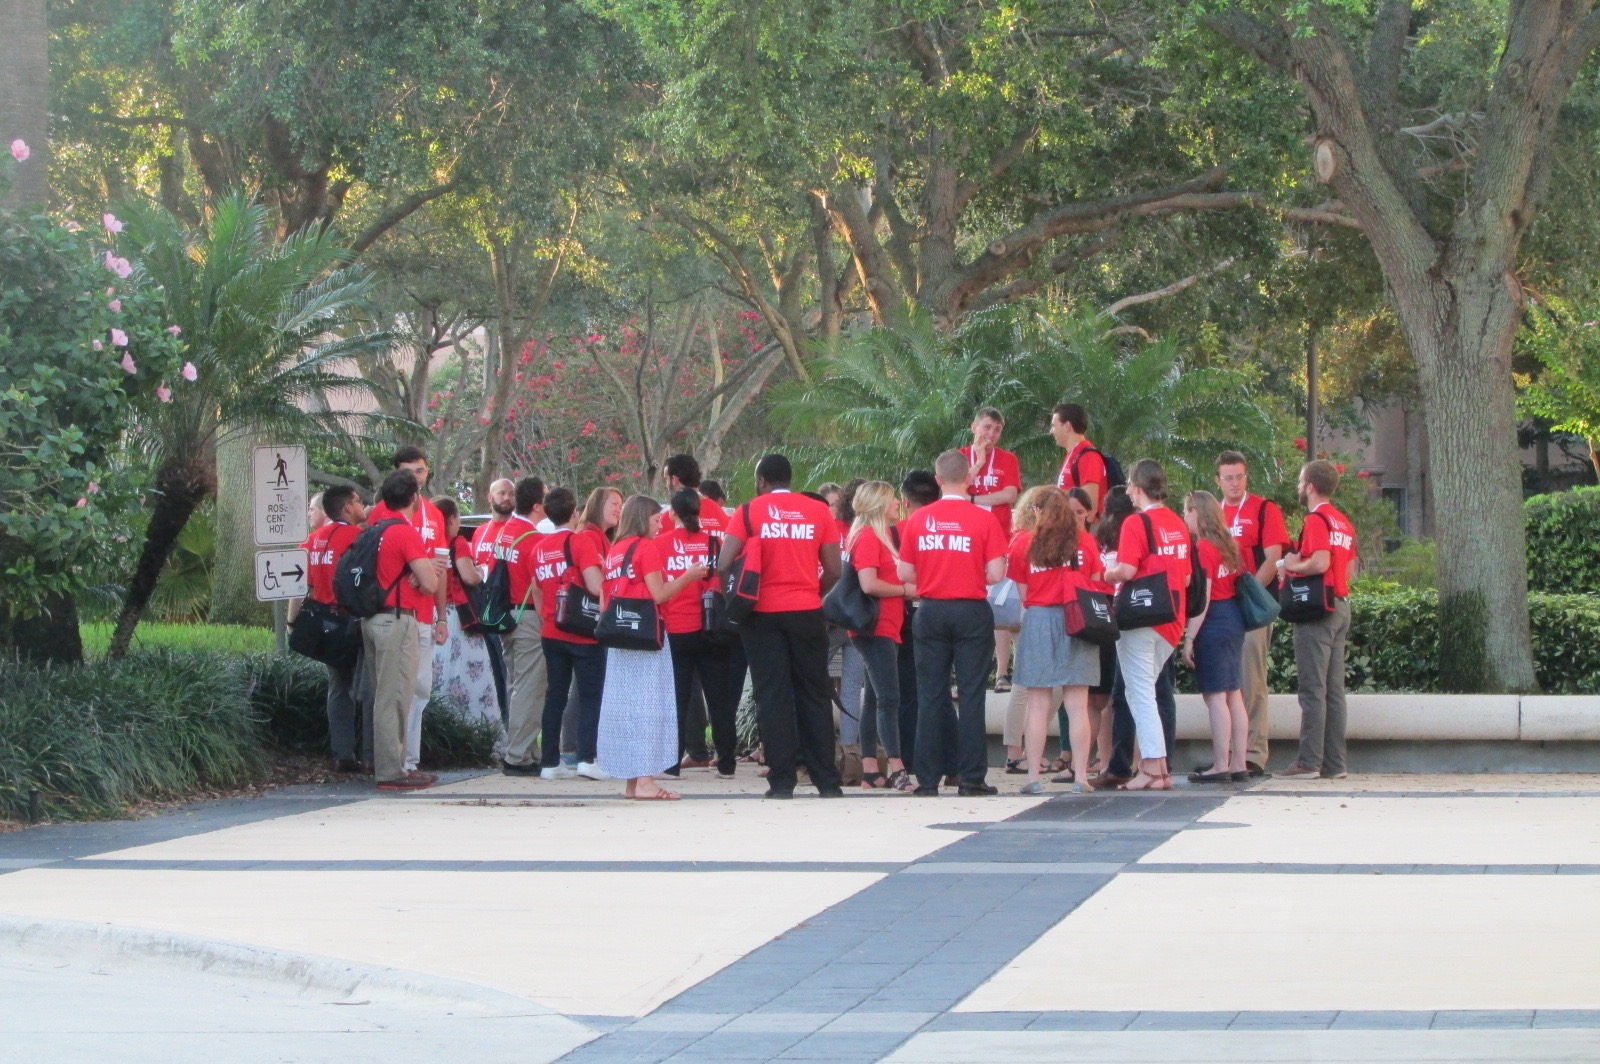 An army of red-clad volunteers, most of them FOCUS missionaries, helped keep the convocation running smoothly (CT Photo/Gail Finke)